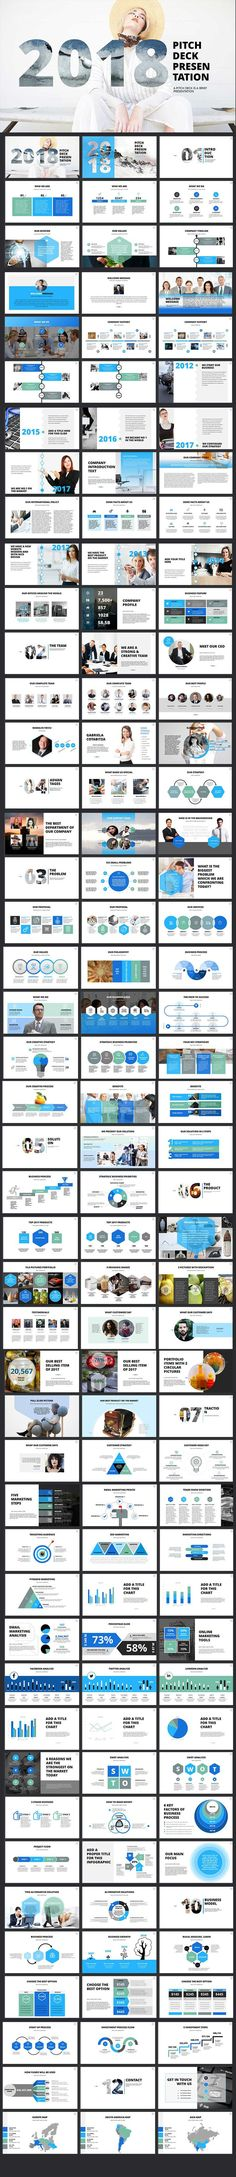 121 best business powerpoint templates images on pinterest in 2018 2018 pitch deck powerpoint template cheaphphosting Gallery